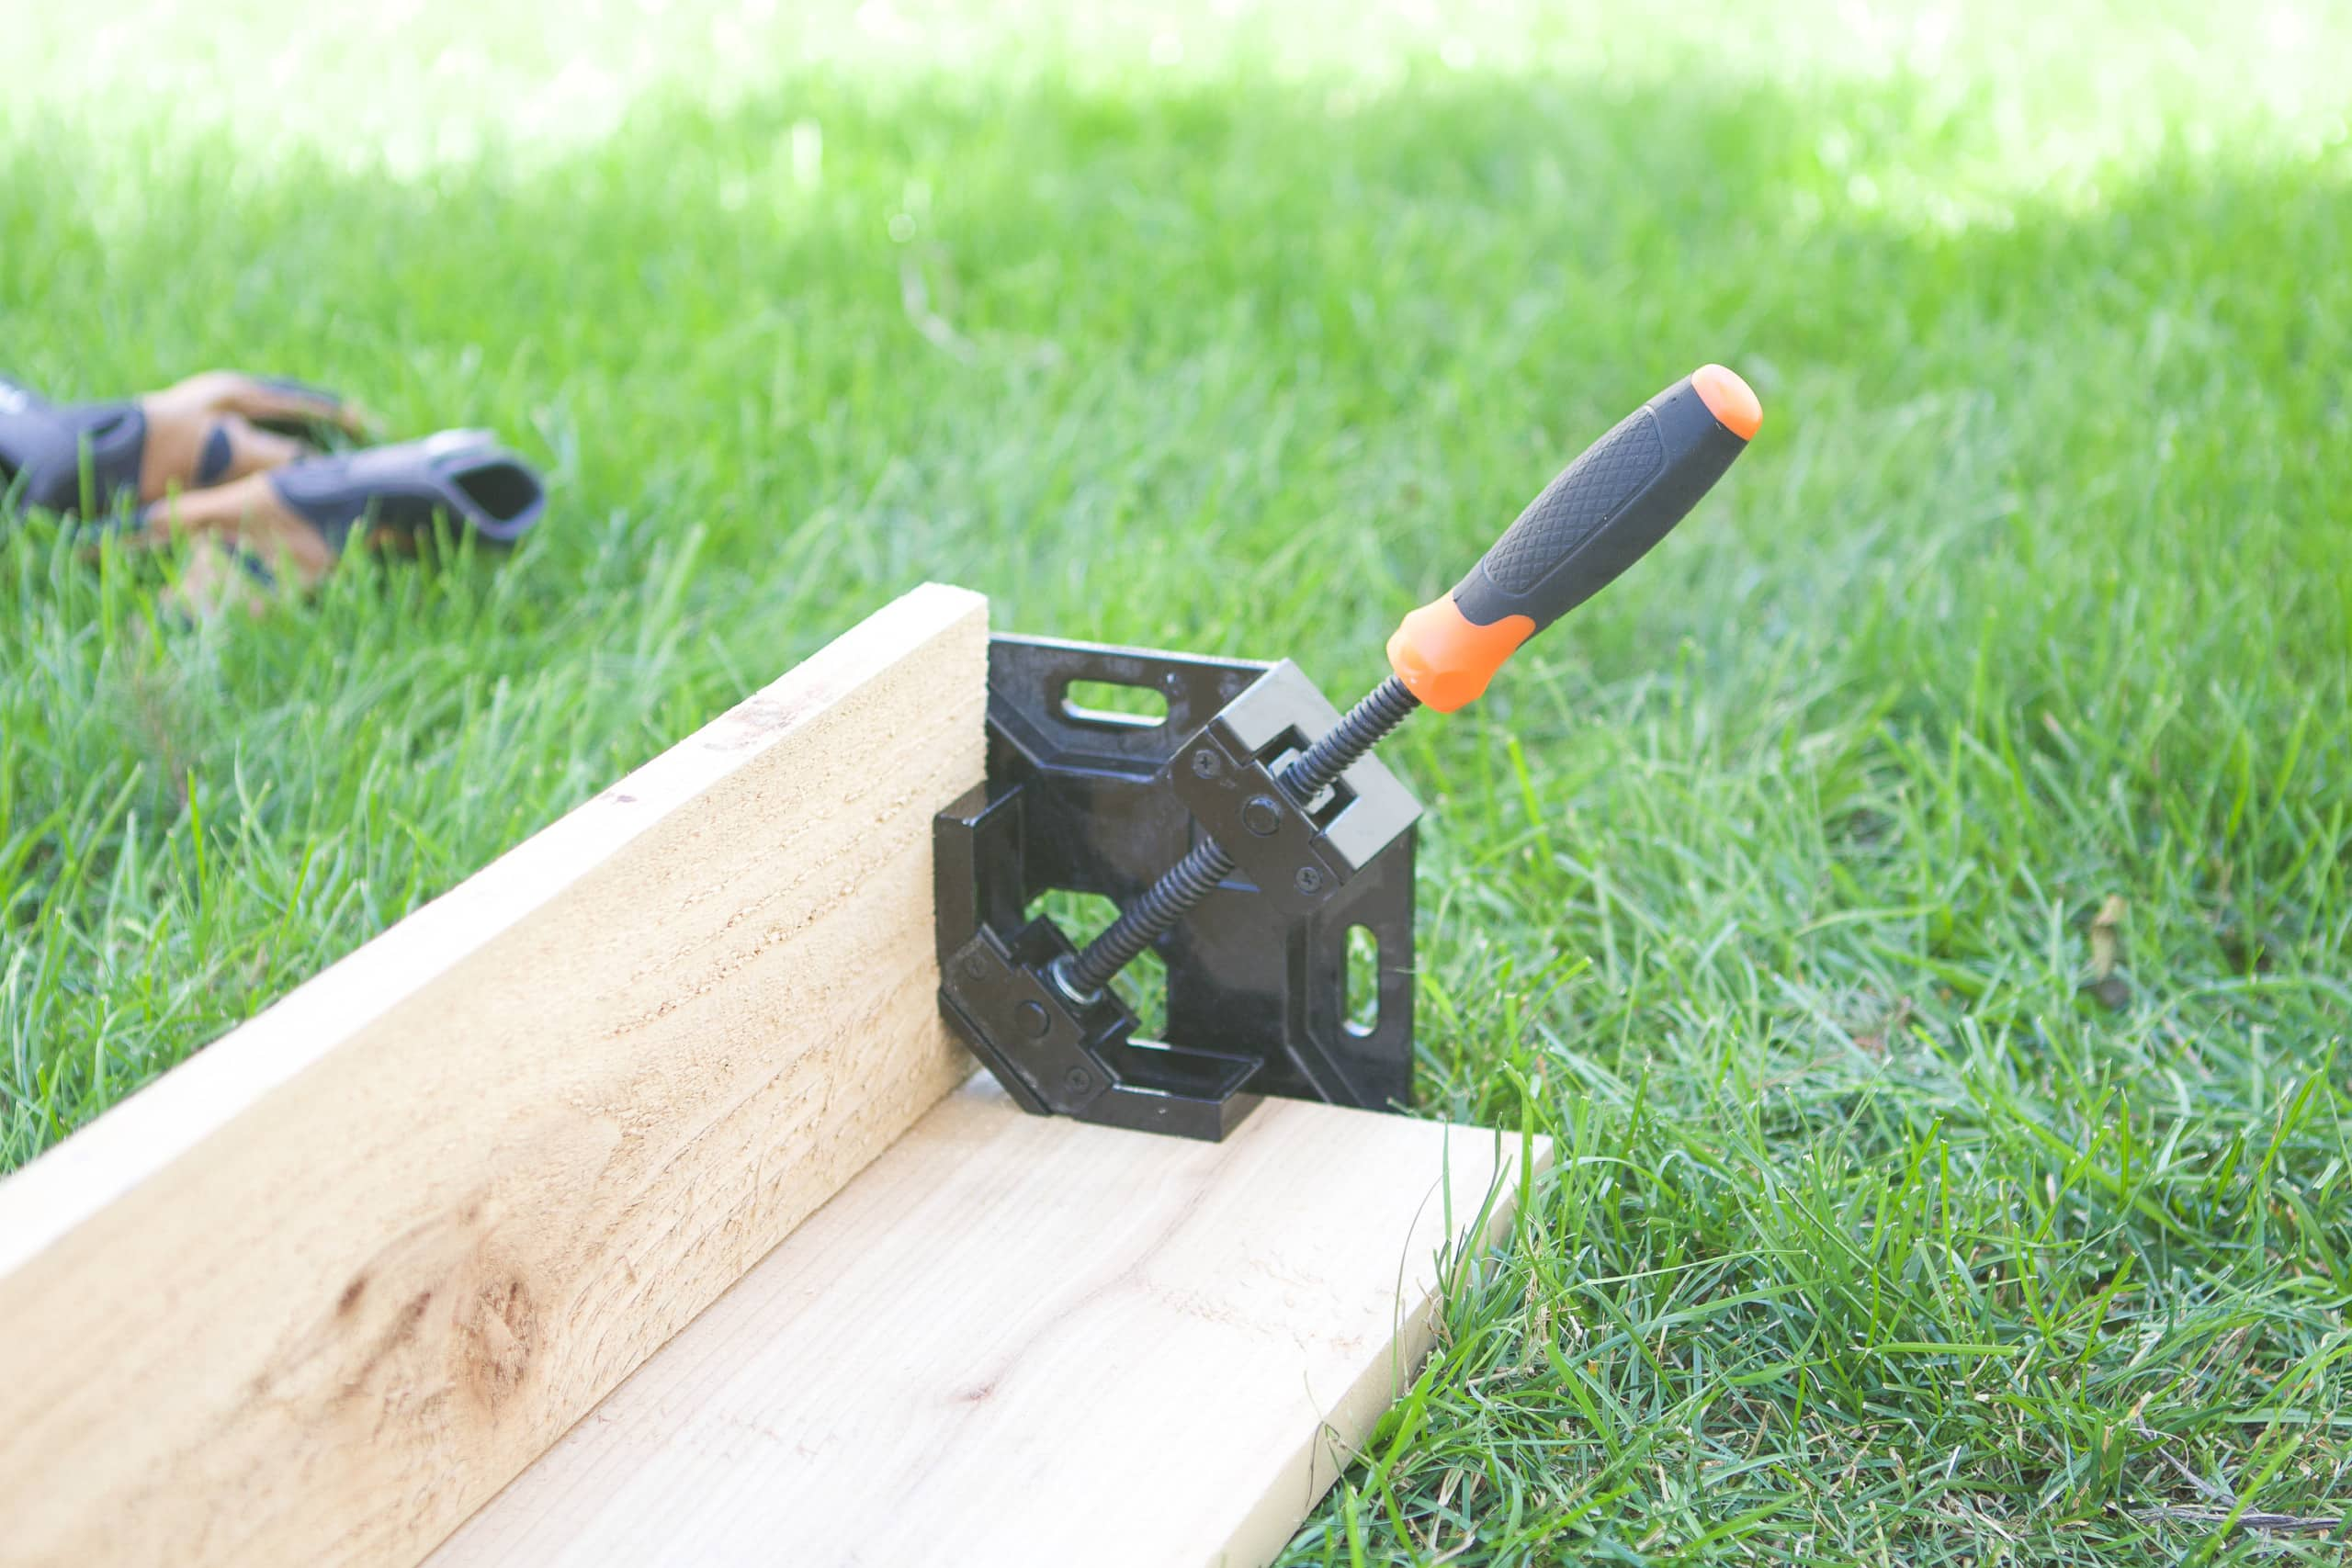 Using a corner clamp to hold two pieces of wood together